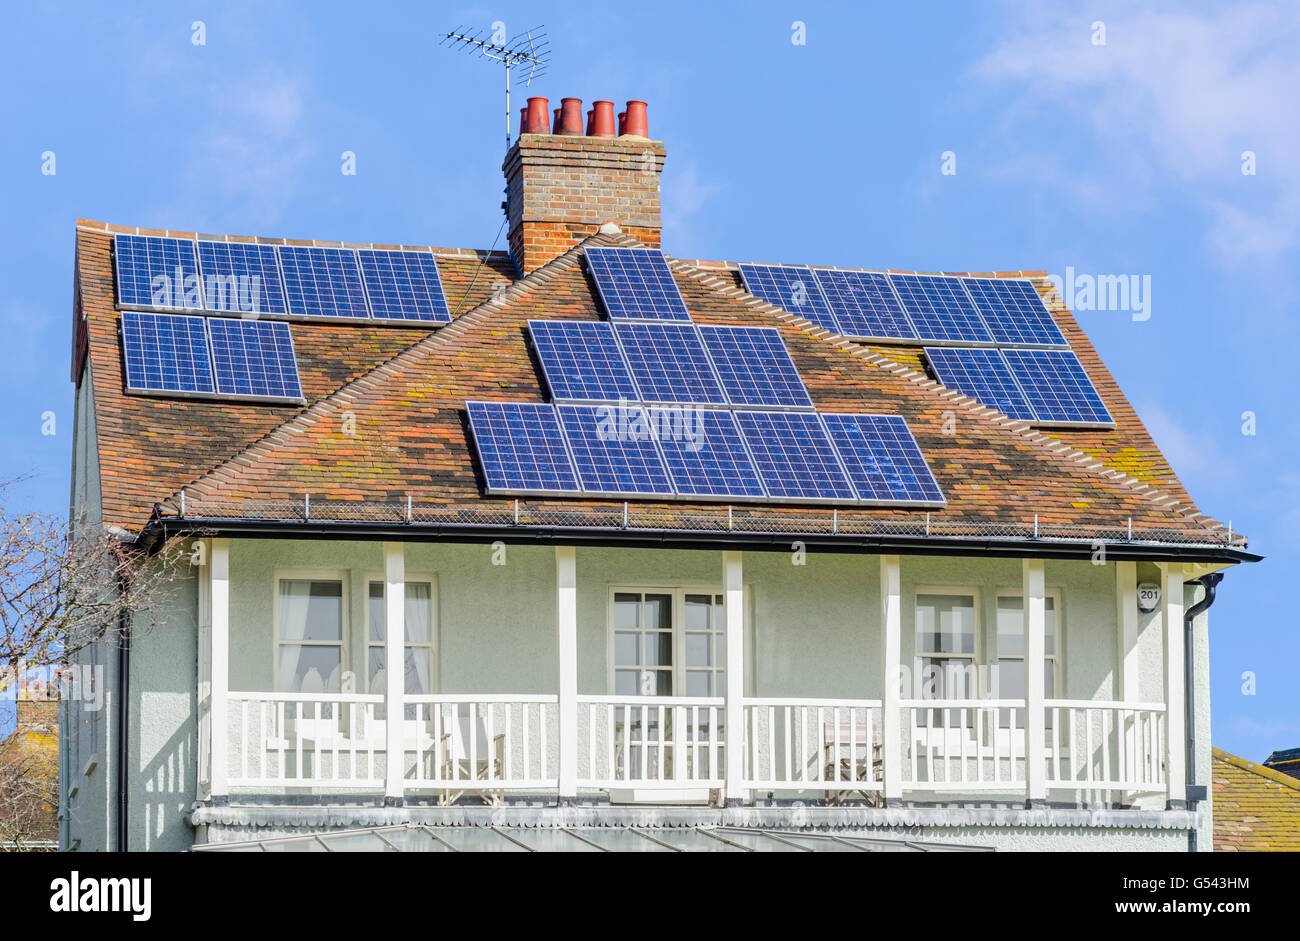 Solar panels on the roof of an old house in the UK. - Stock Image